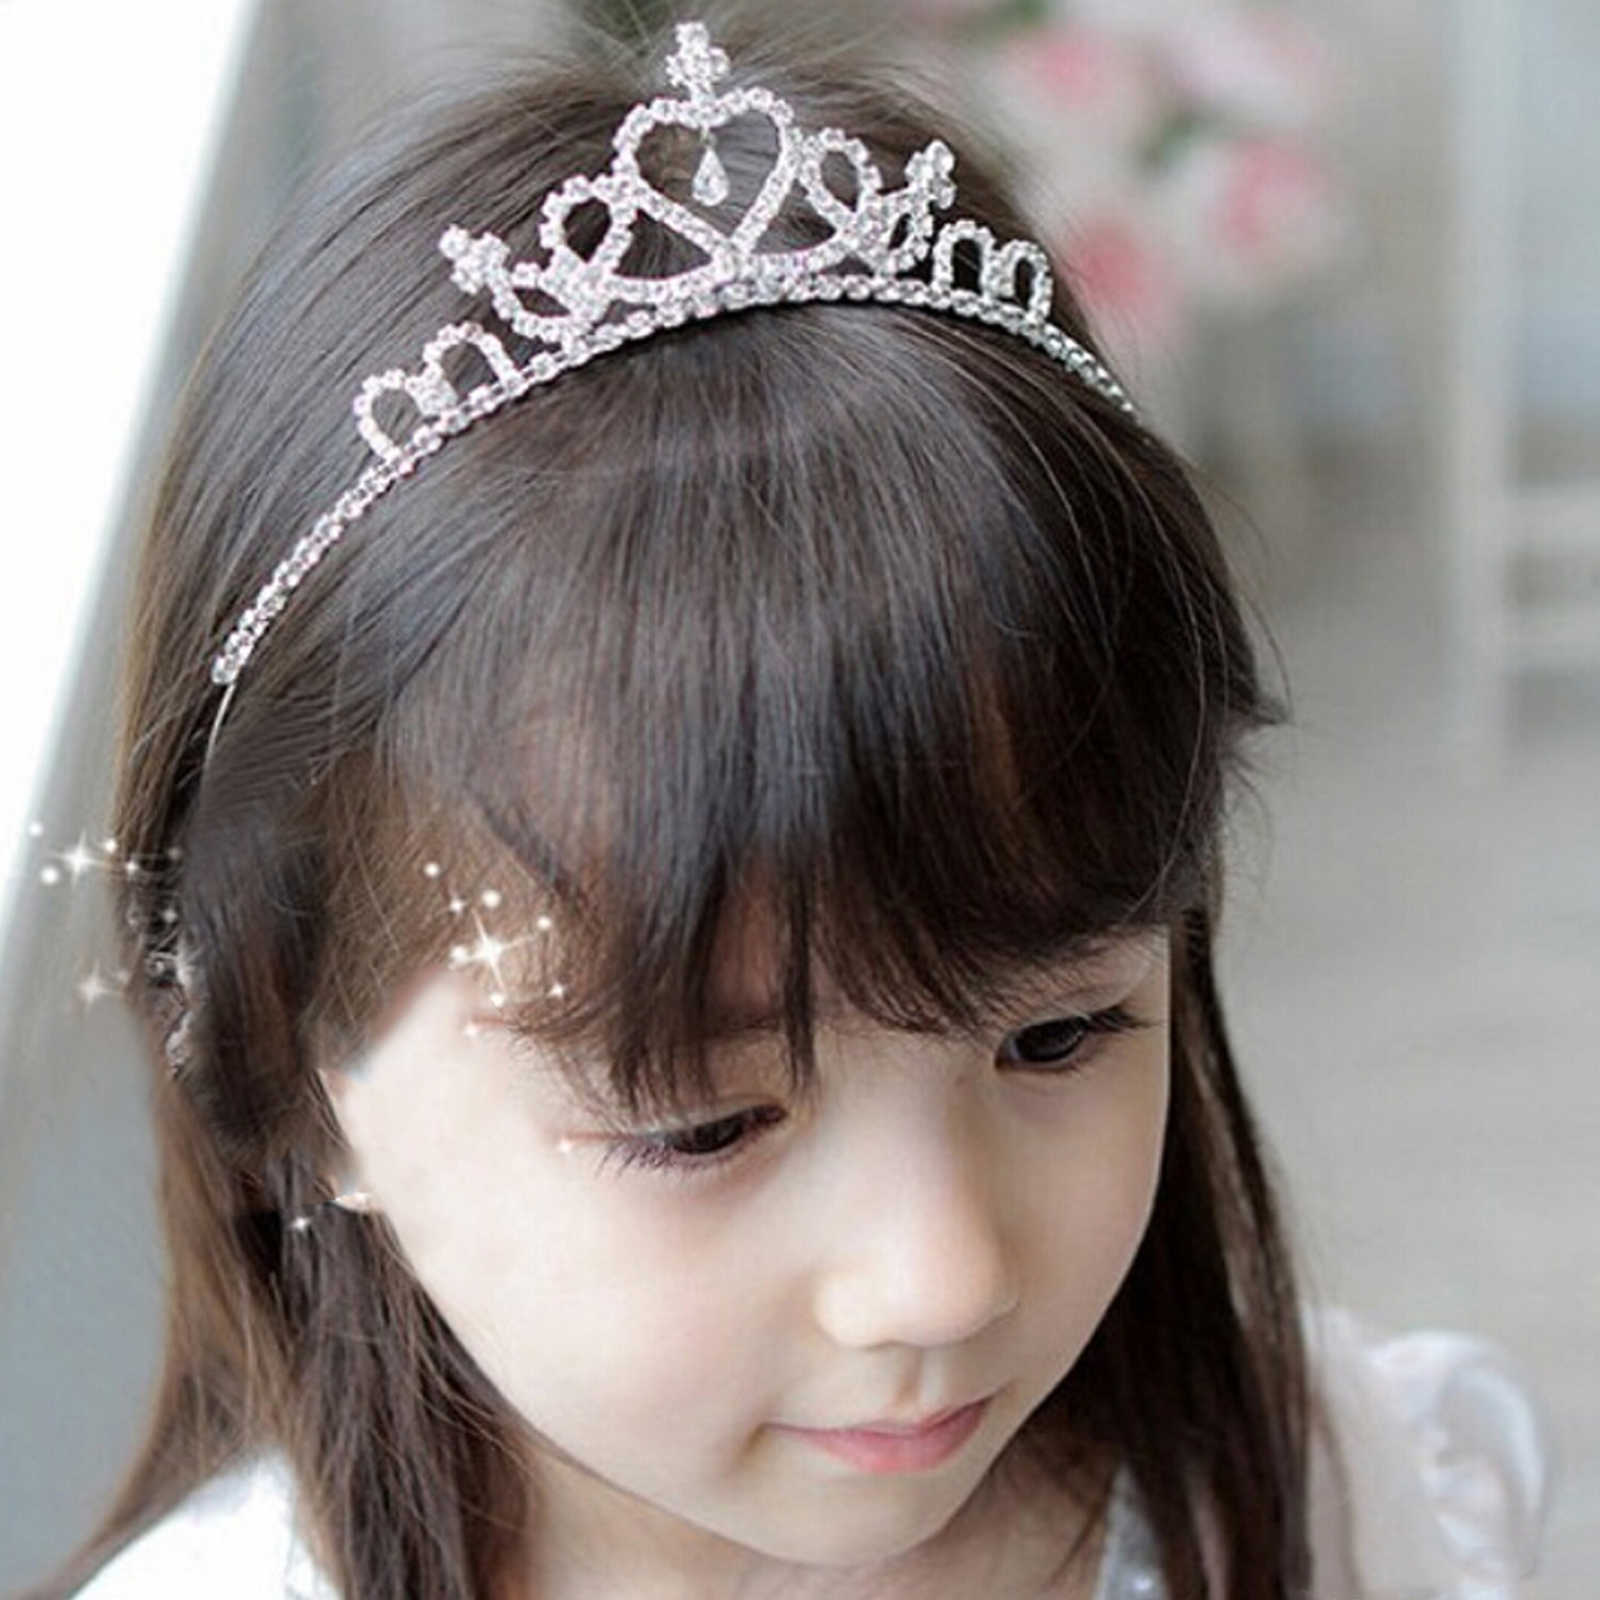 Crystal Tiara Hair Band Kid Girl Bridal Princess Prom Crown Kid Girl Party Accessiories Bridal Princess Prom Crown Headband Gift